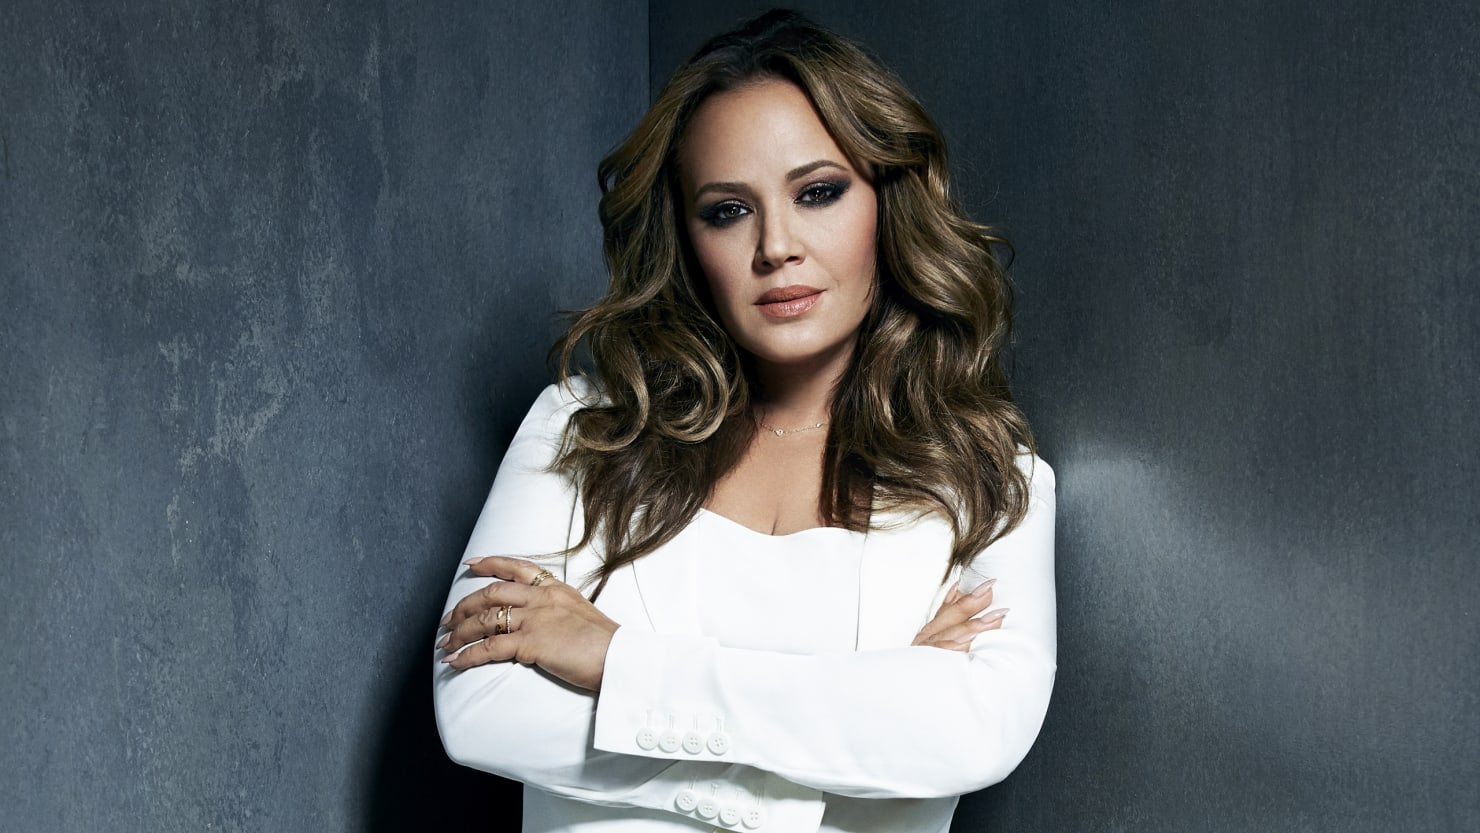 Leah Remini on Why Jennifer Lopez Said No to Scientology and How the 'Cult' Can Be Stopped